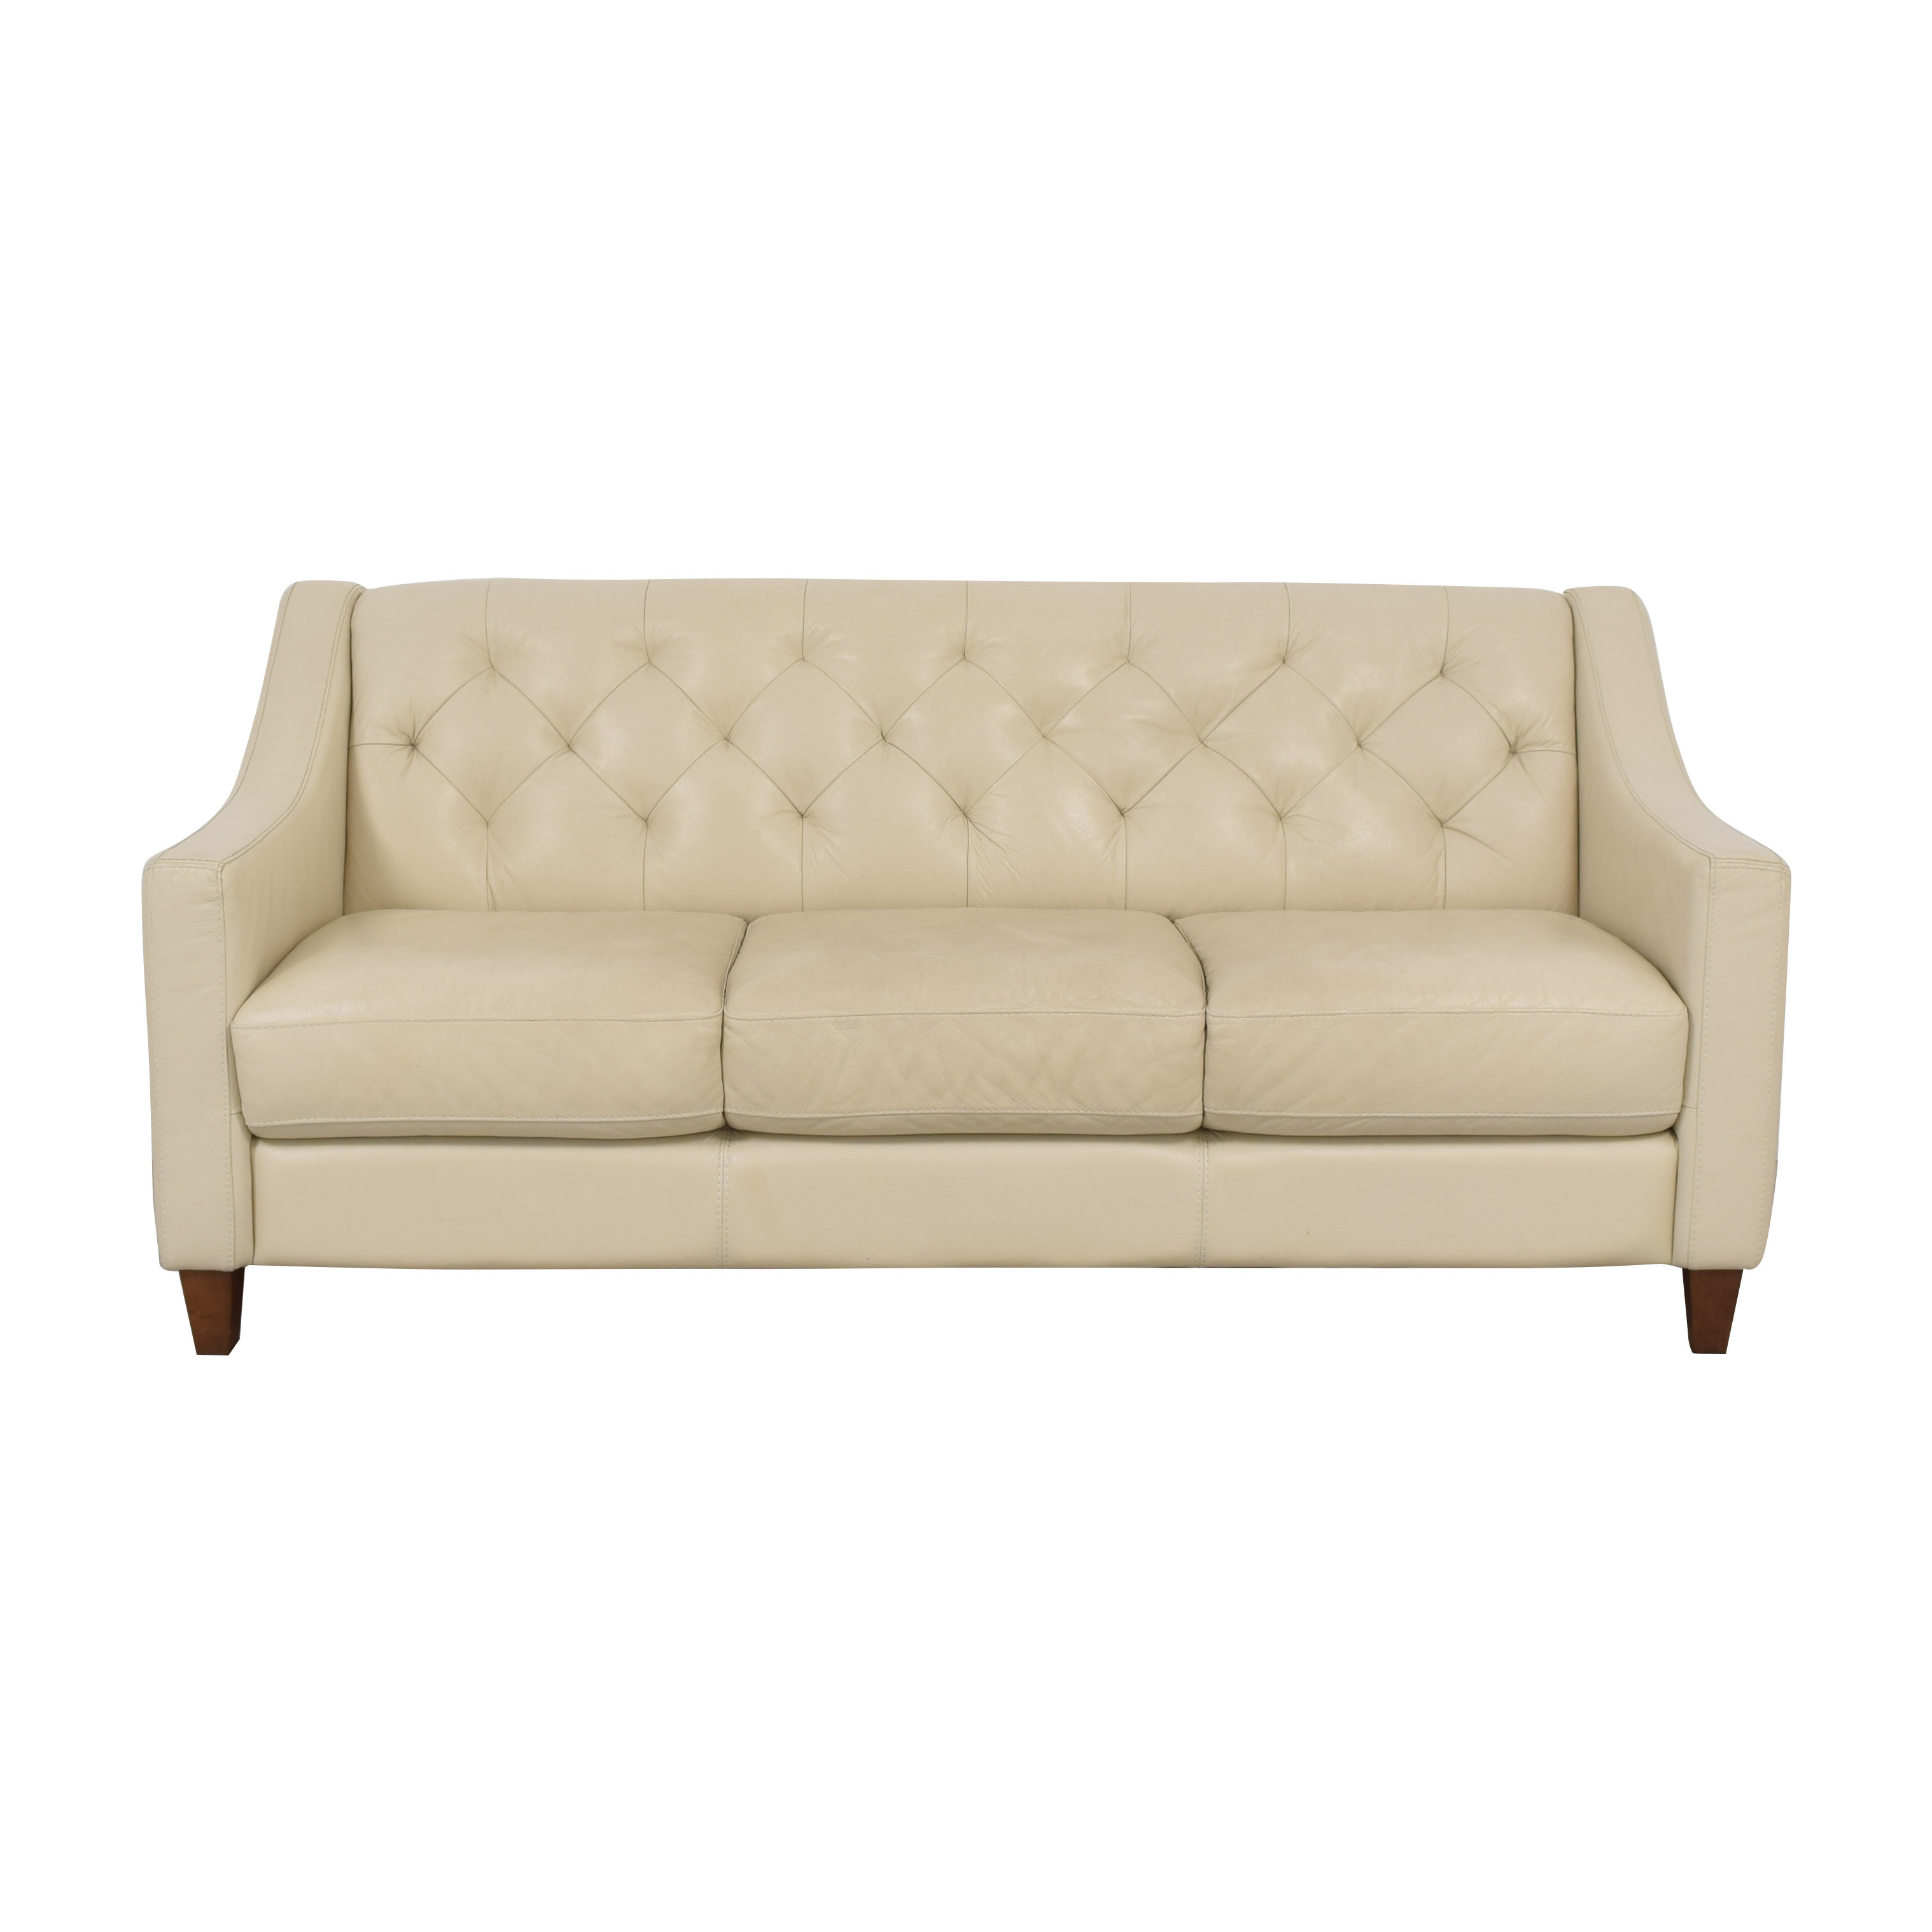 Chateau d'Ax Slope Arm Tufted Sofa / Sofas